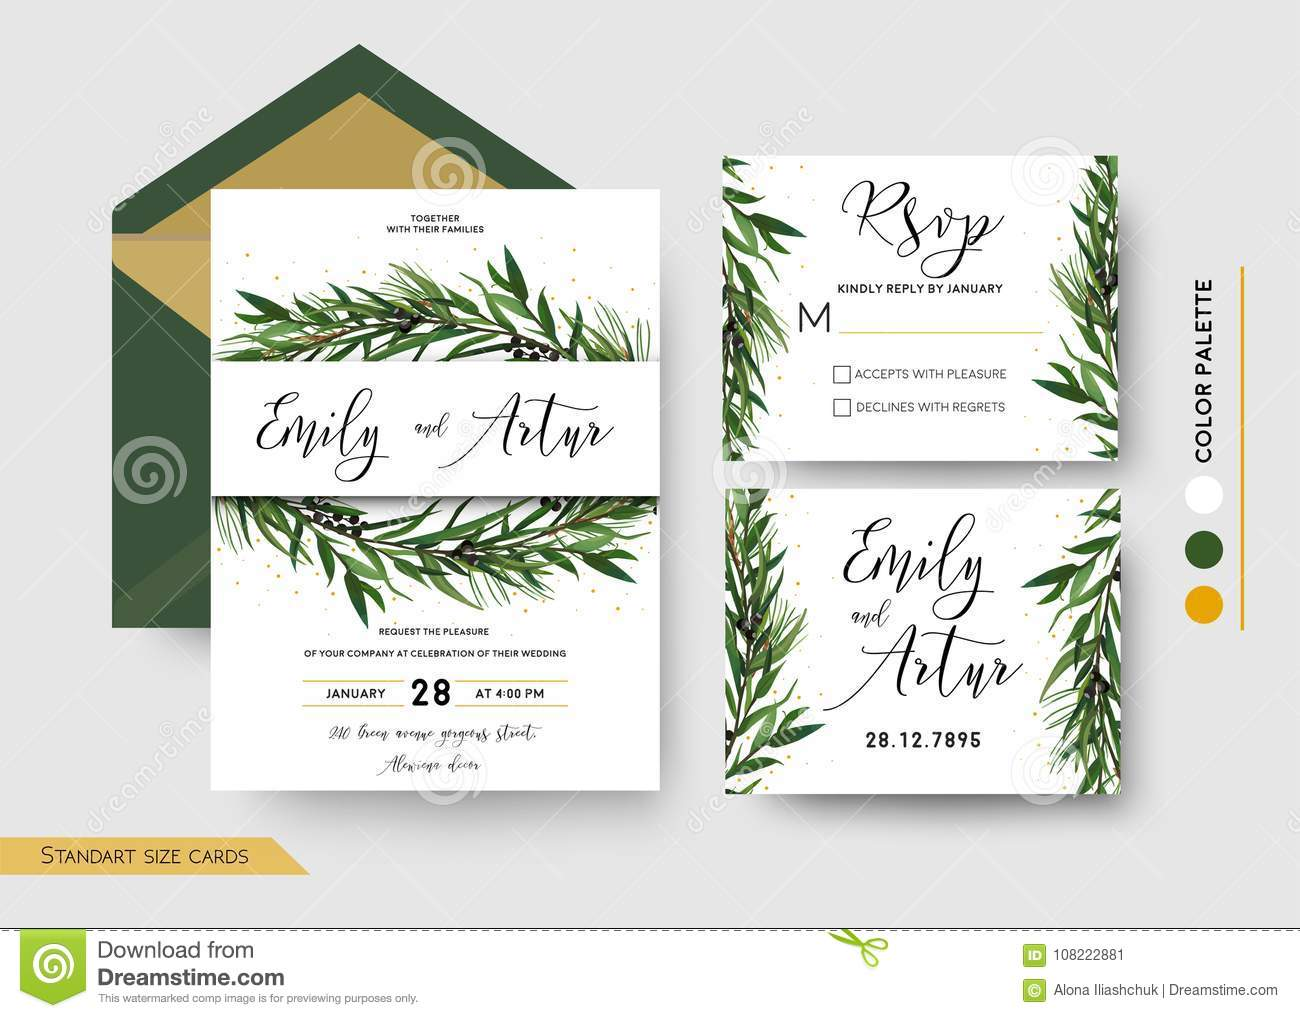 Wedding Invitation Save The Date, Rsvp Invite Card Design: Pine ...